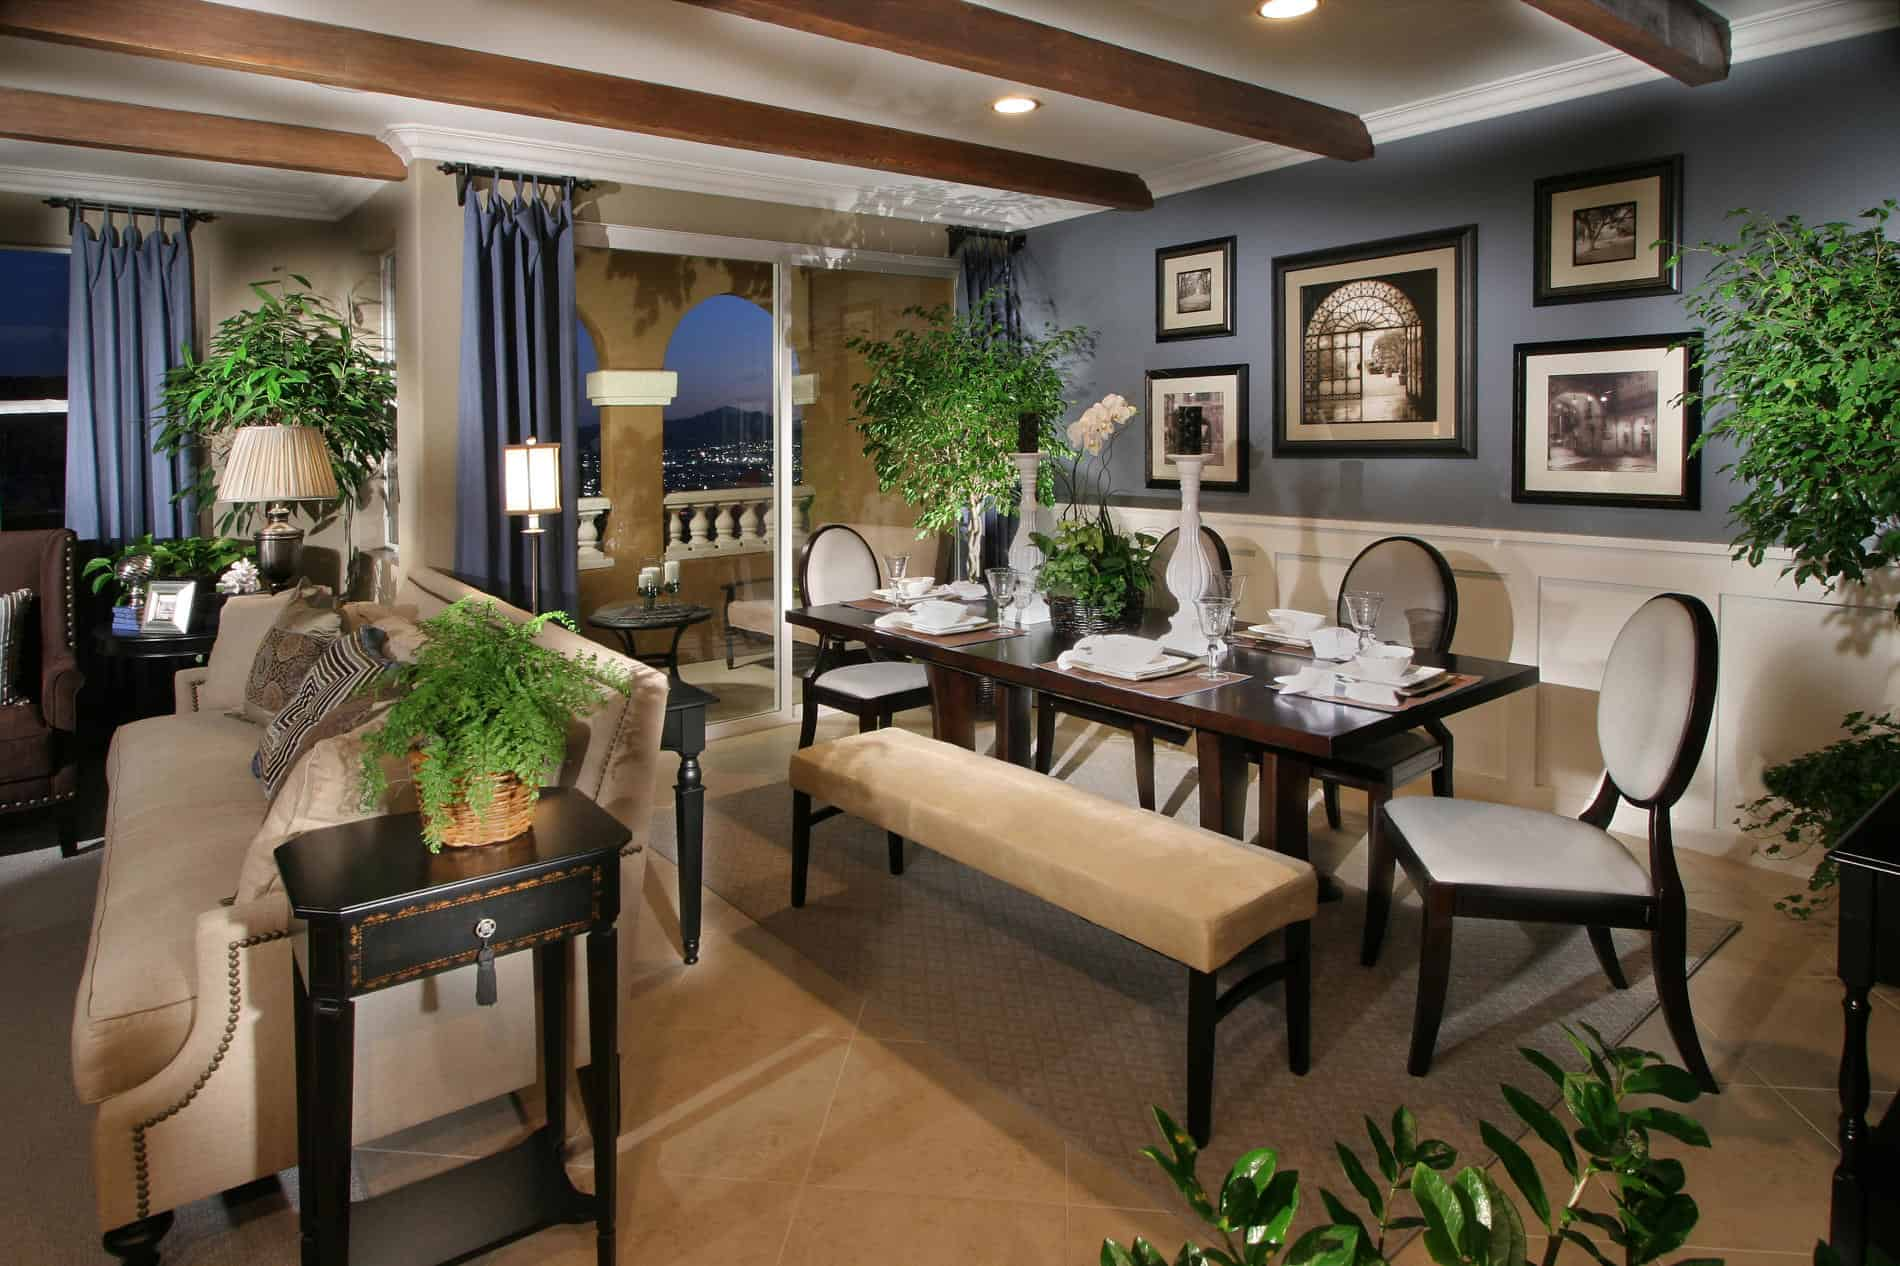 Ways to decorate an open floor plan without overcrowding - Open floor plan decorating ...